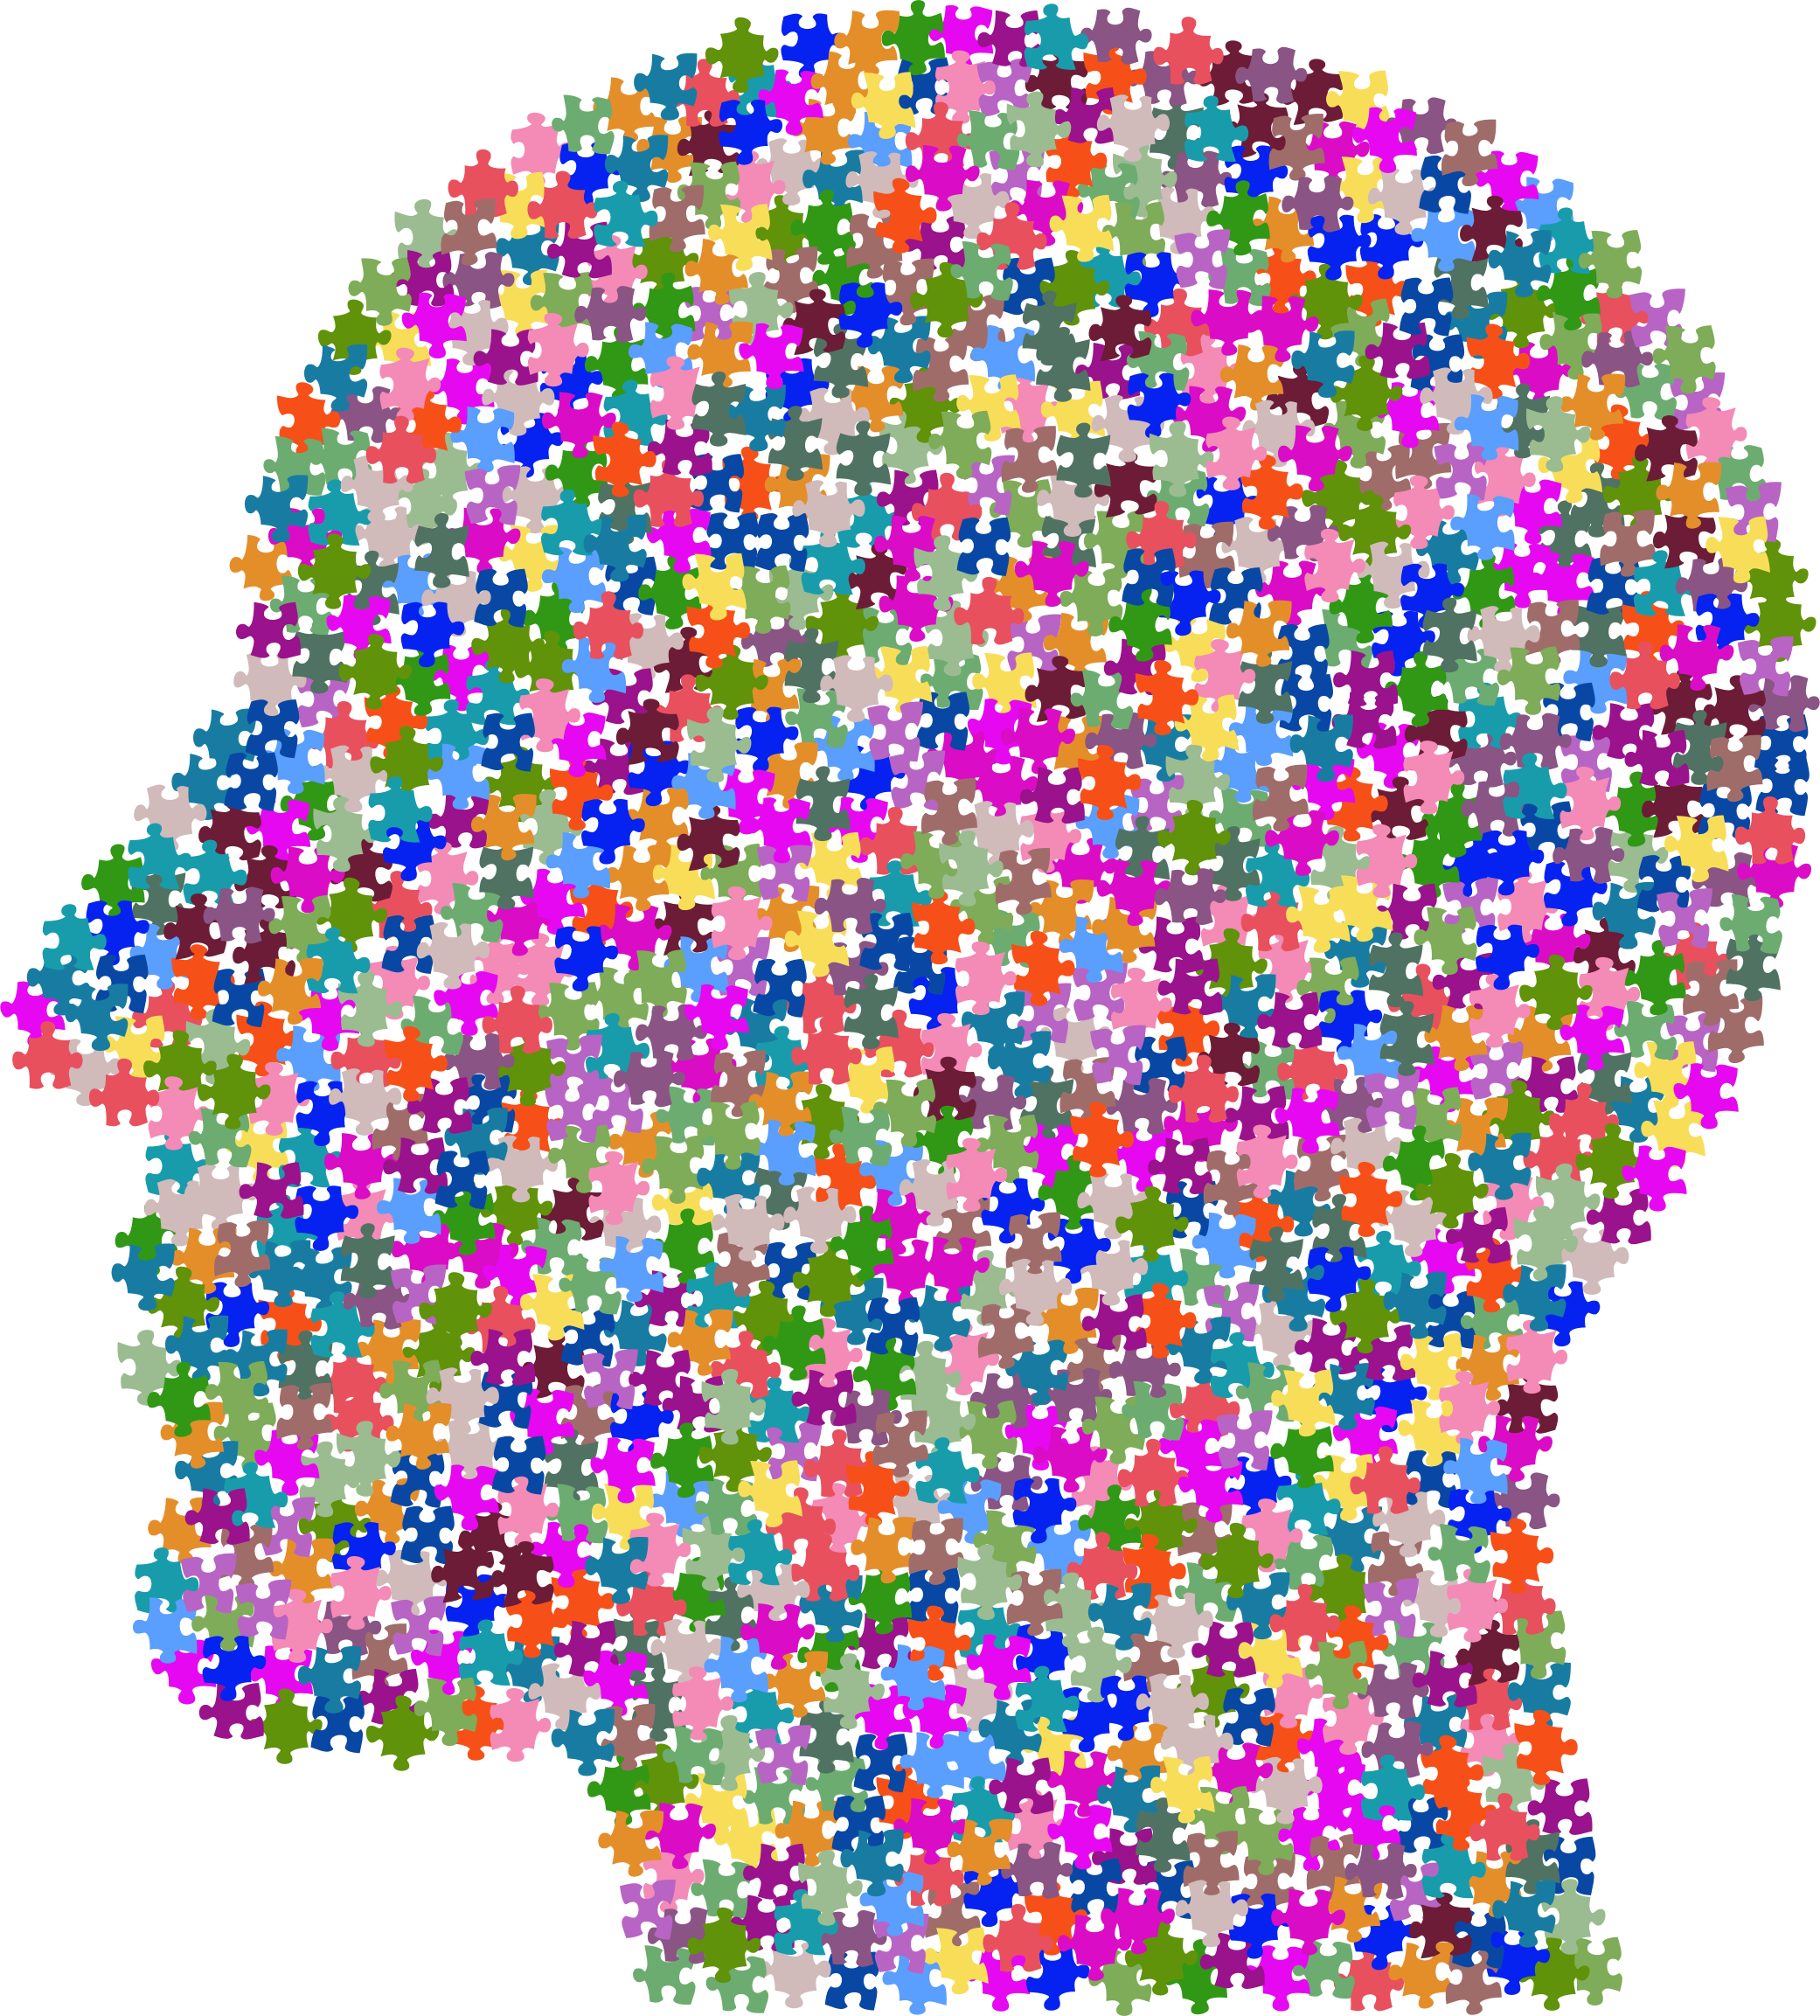 Psychology clipart puzzle head. Prismatic jittered big image